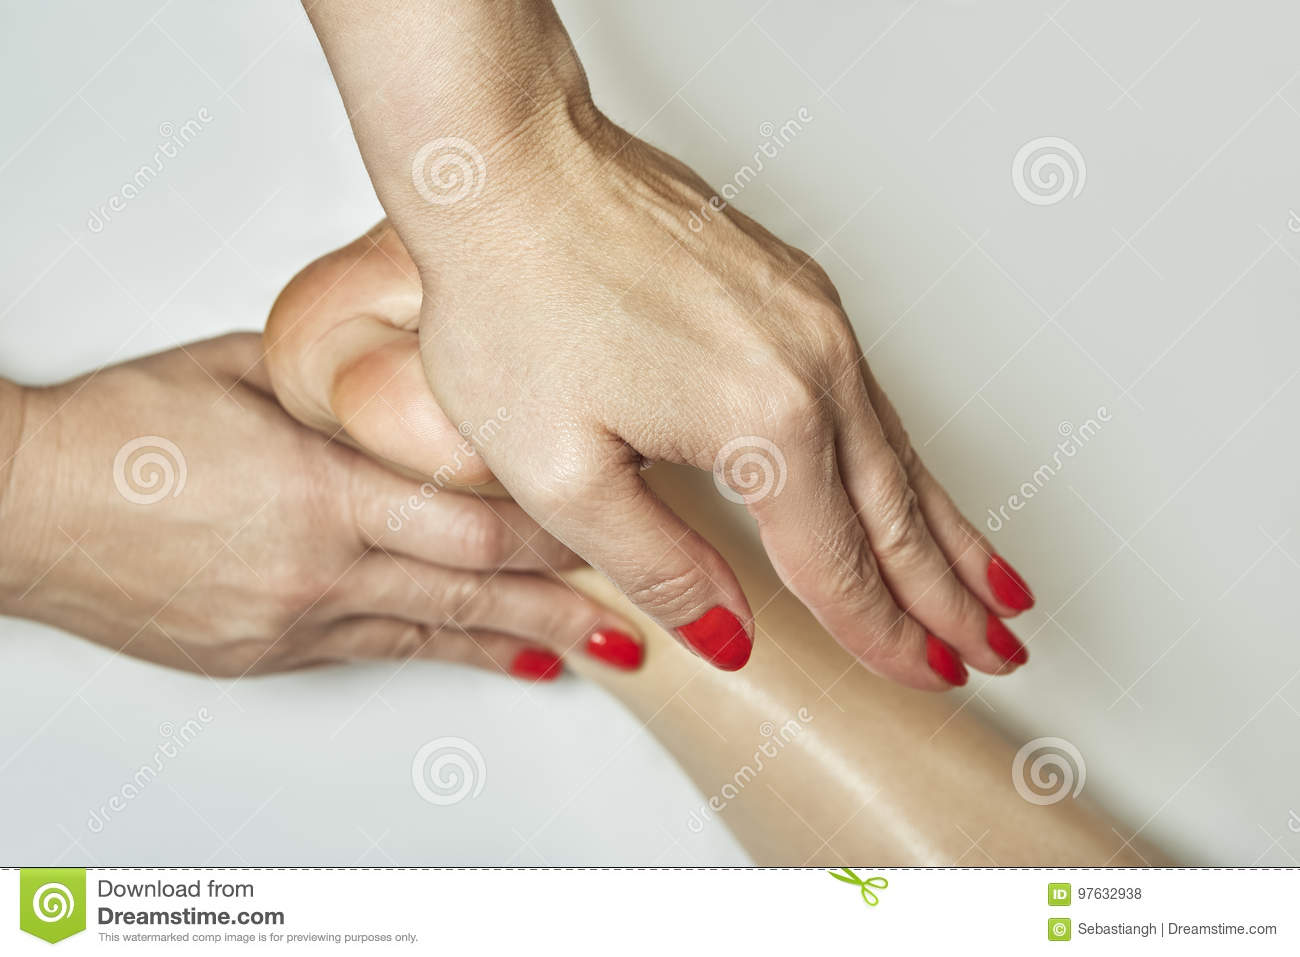 Adult massage and hand release photo